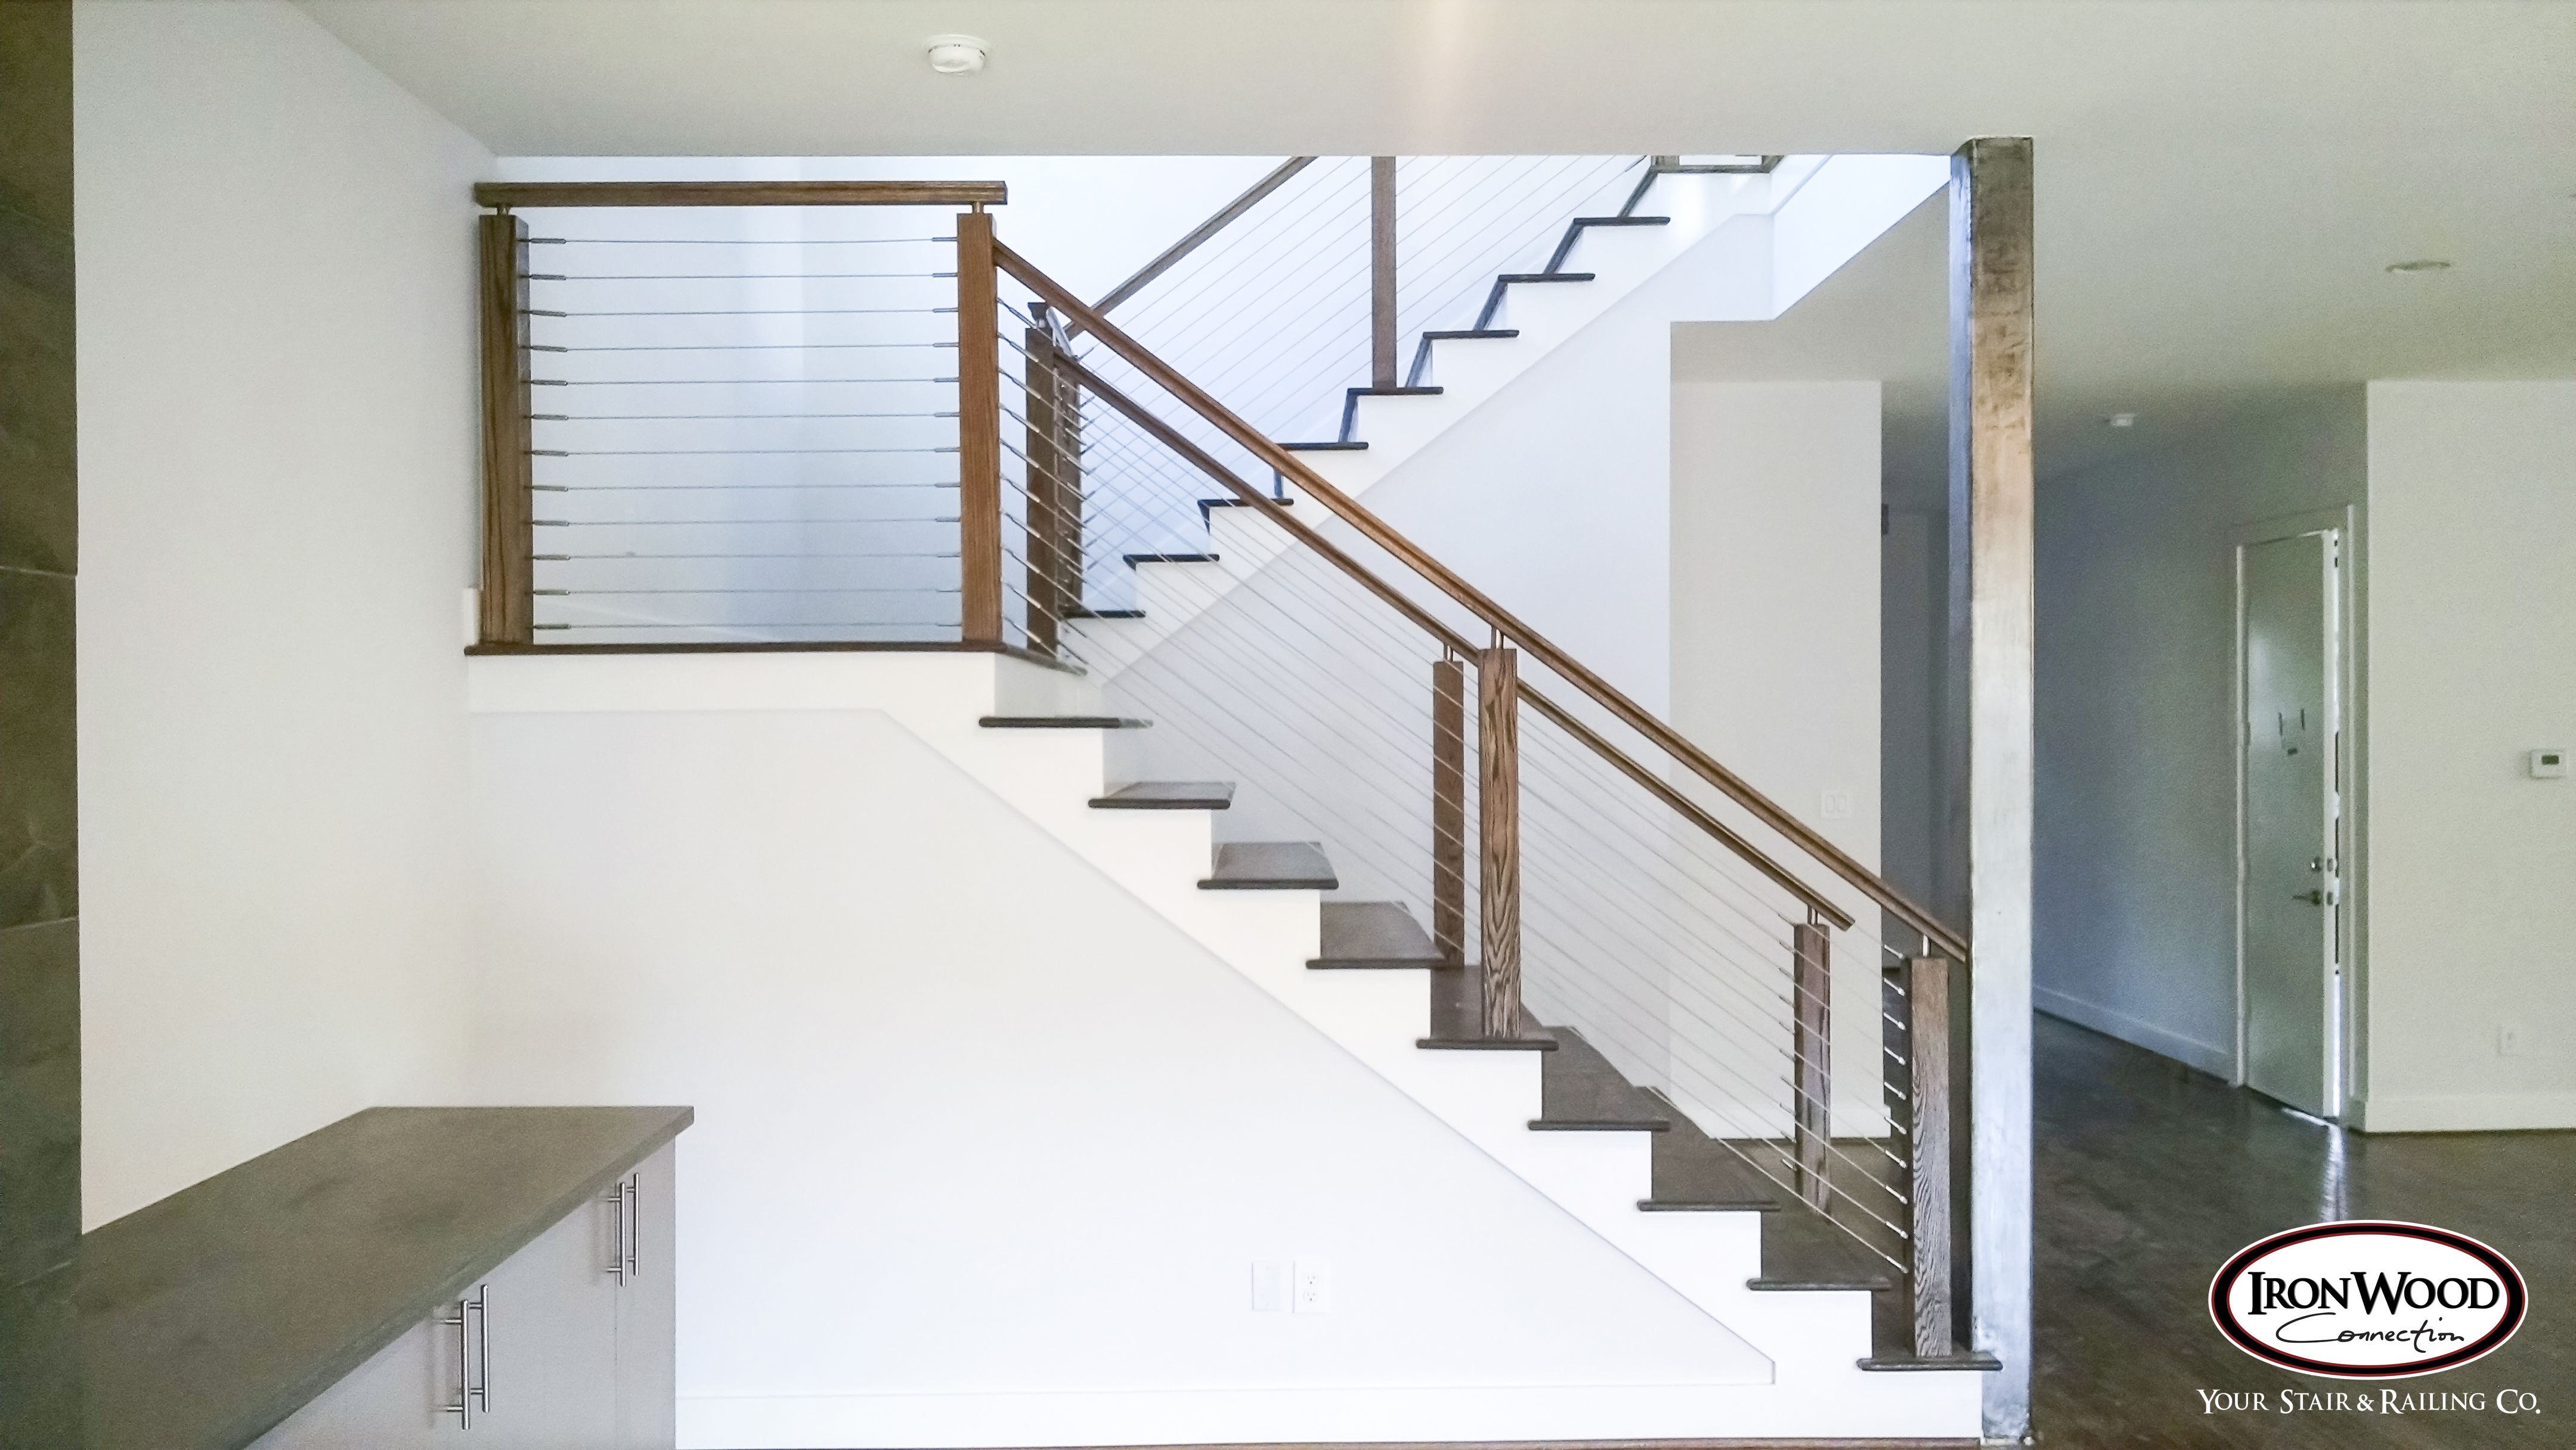 Glass Cable Railing Idea Photo Gallery Ironwood Connection Stair Railing Company Cable Stair Railing Stair Railing Kits Stair Railing